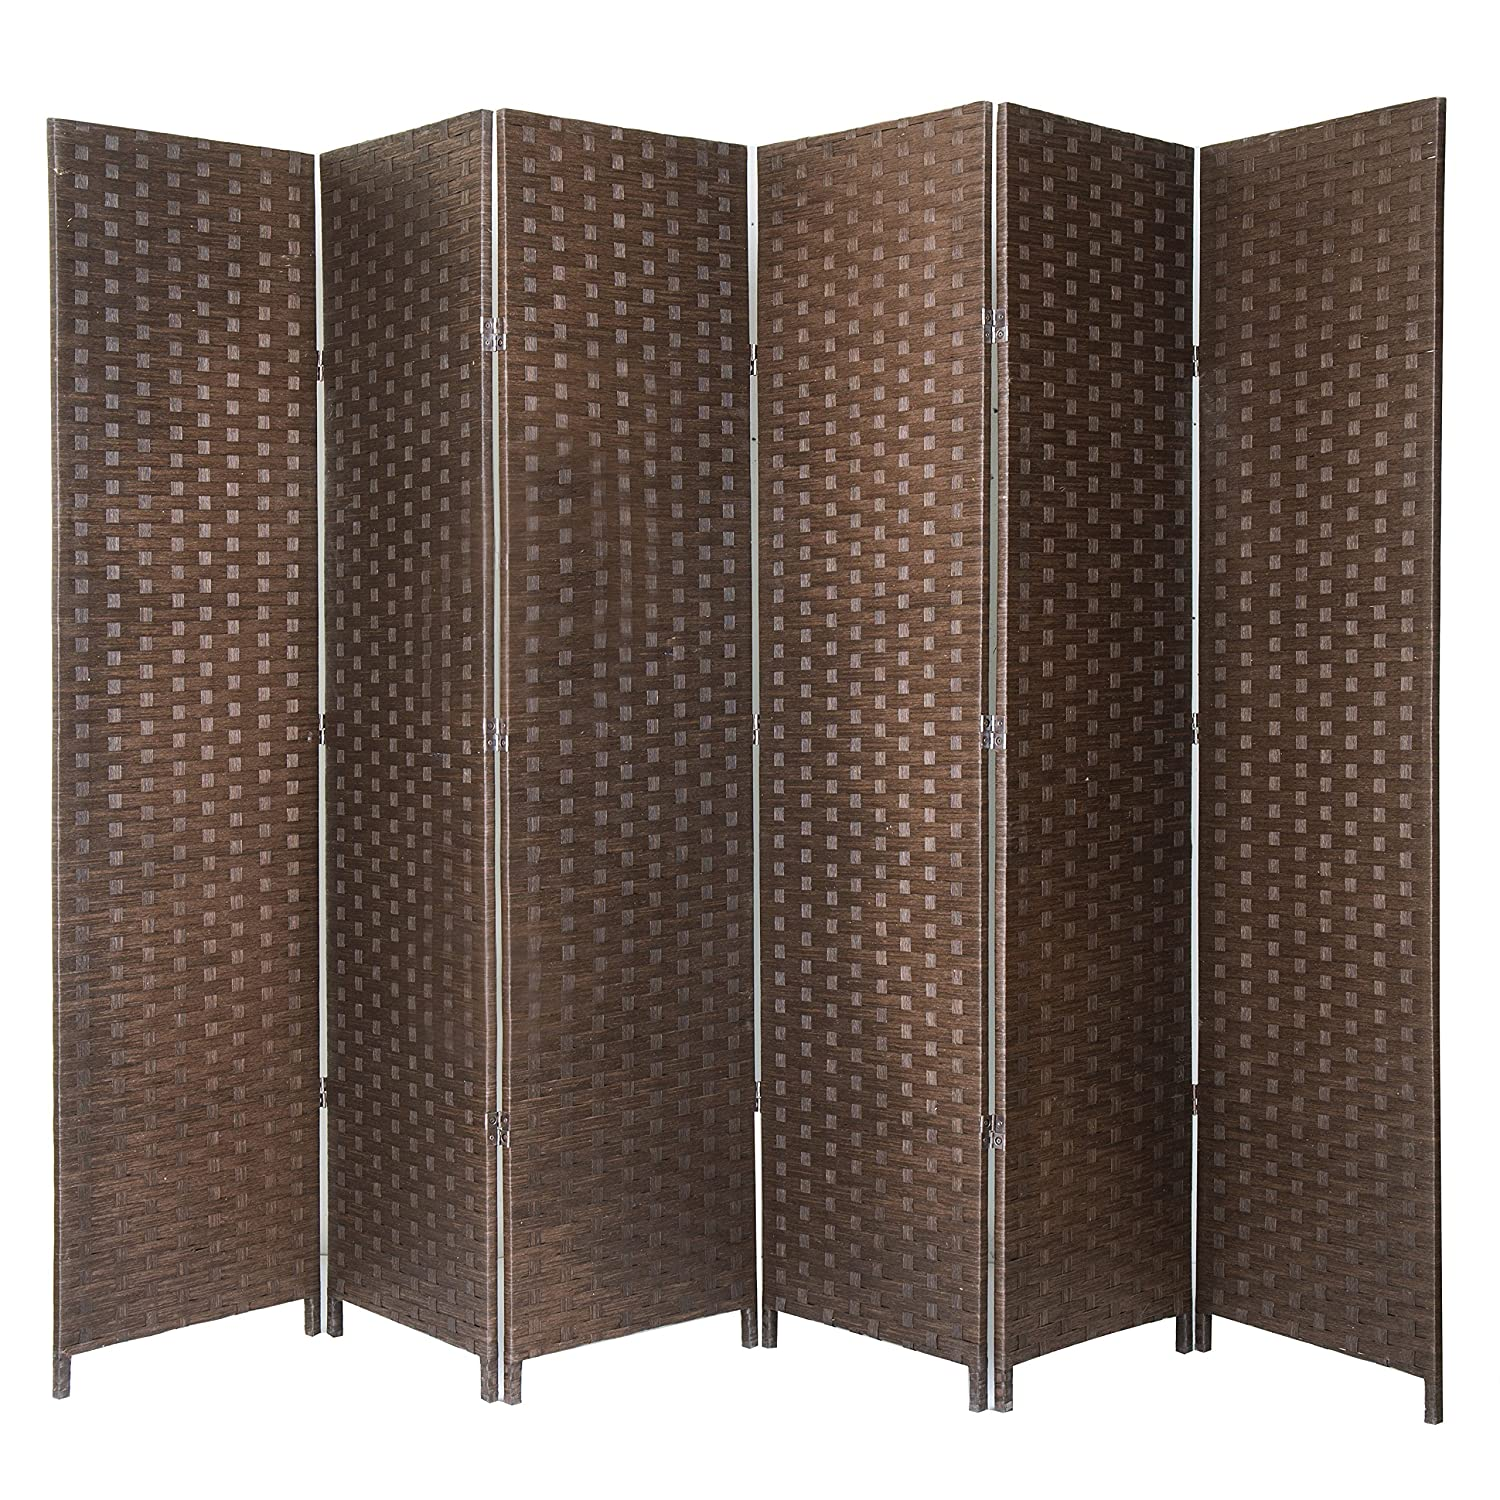 Amazoncom Mygift Brown Woven Seagrass 6 Panel Room Divider, Brown Kitchen